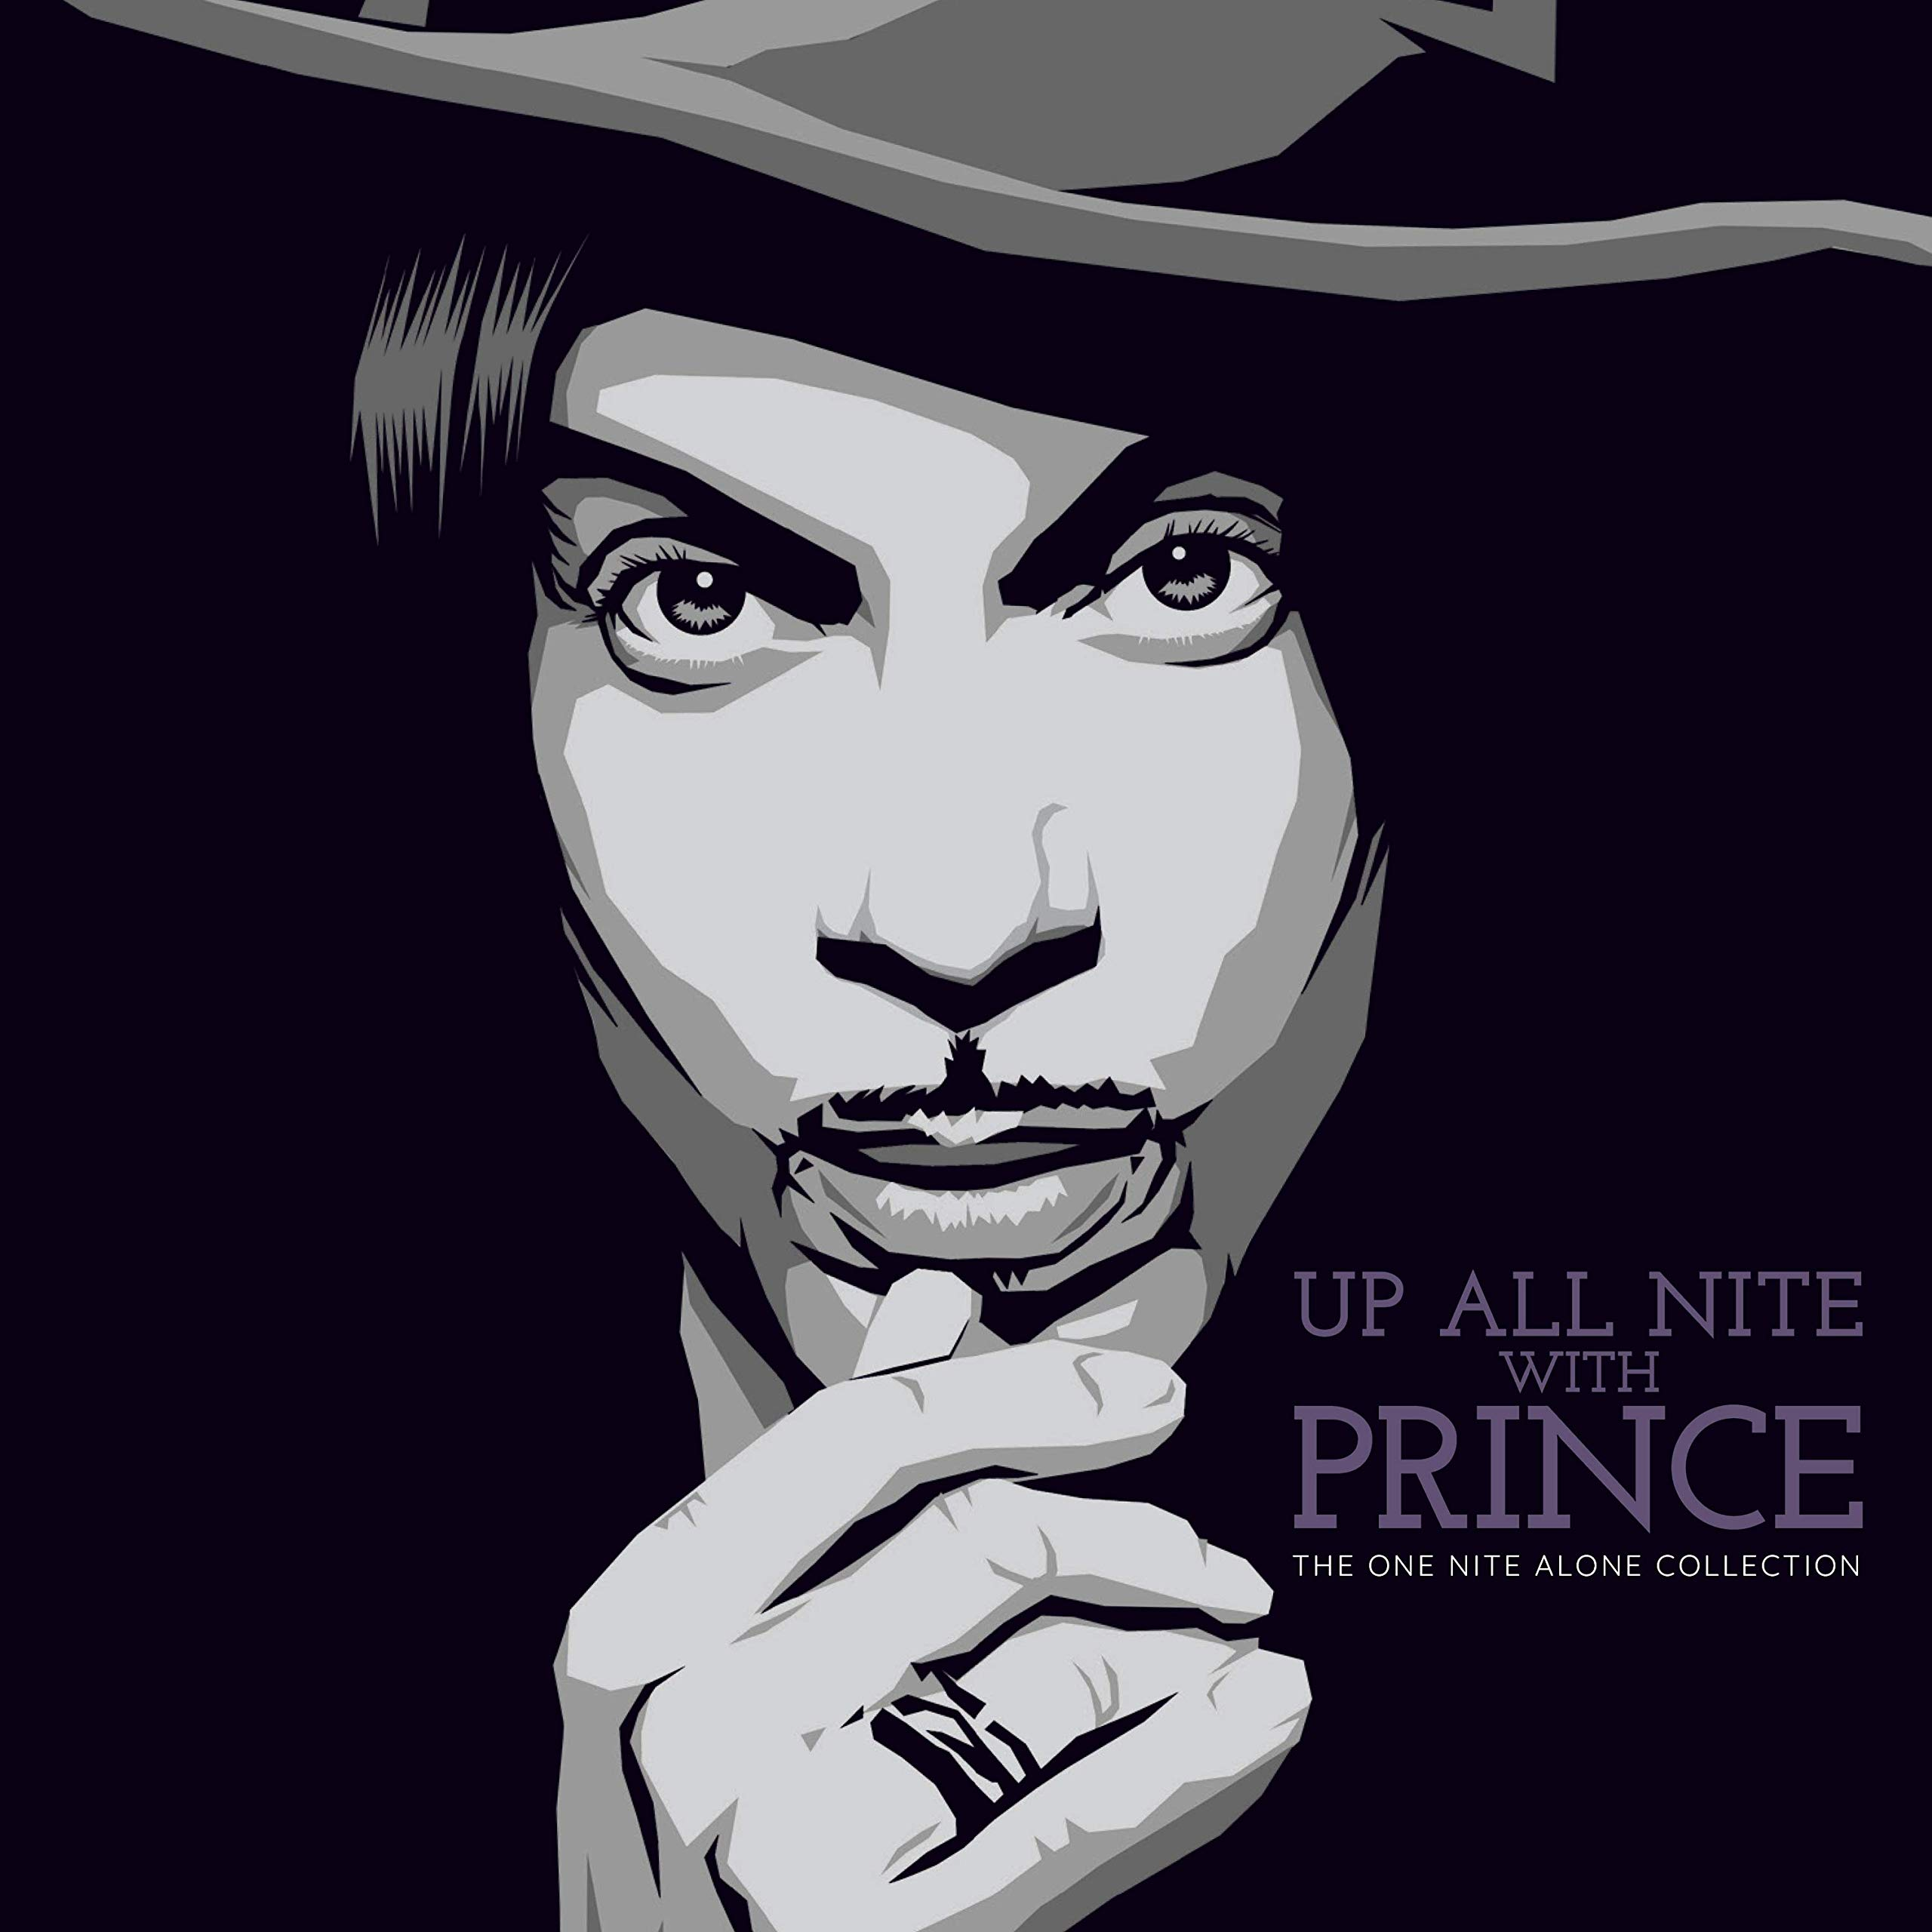 Prince & The NPG - Up All Nite With Prince  The One Nite Alone Collection (2020) [FLAC] Download